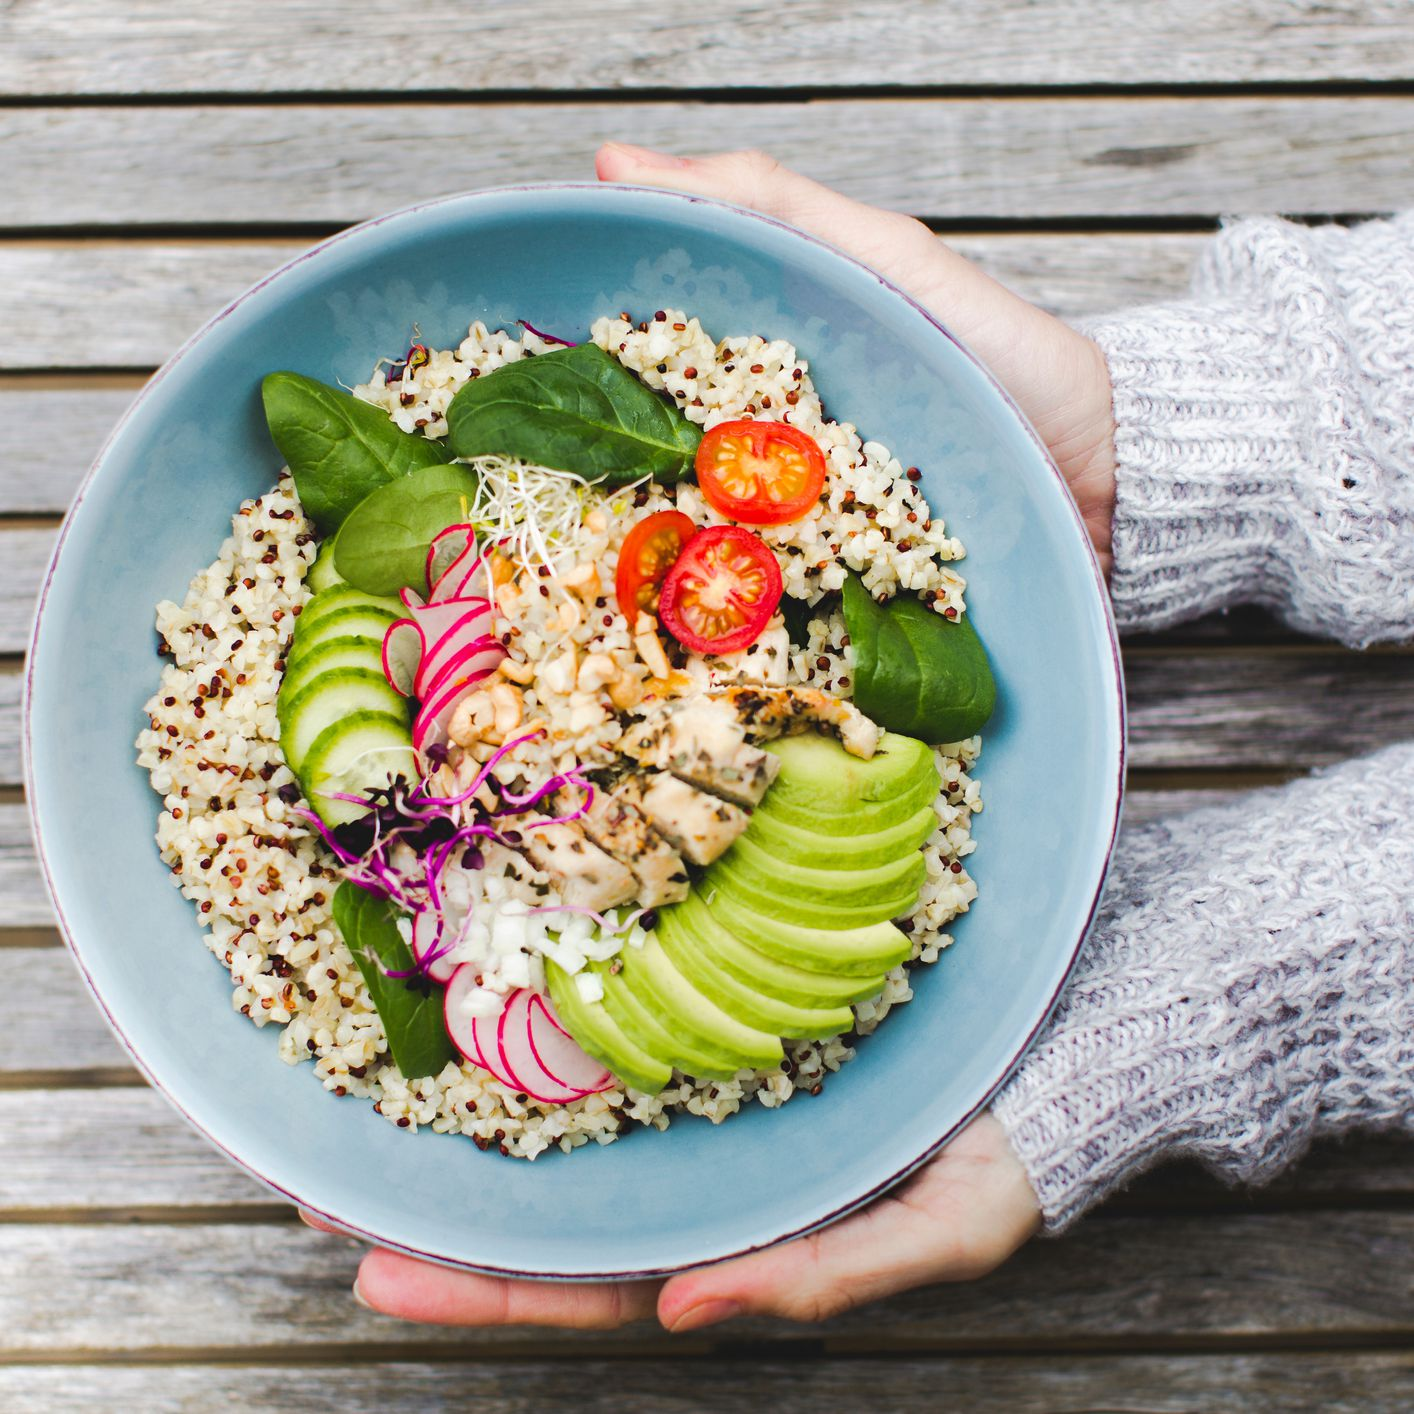 Low-FODMAP Diet vs. Other Diets: Which Is Best?